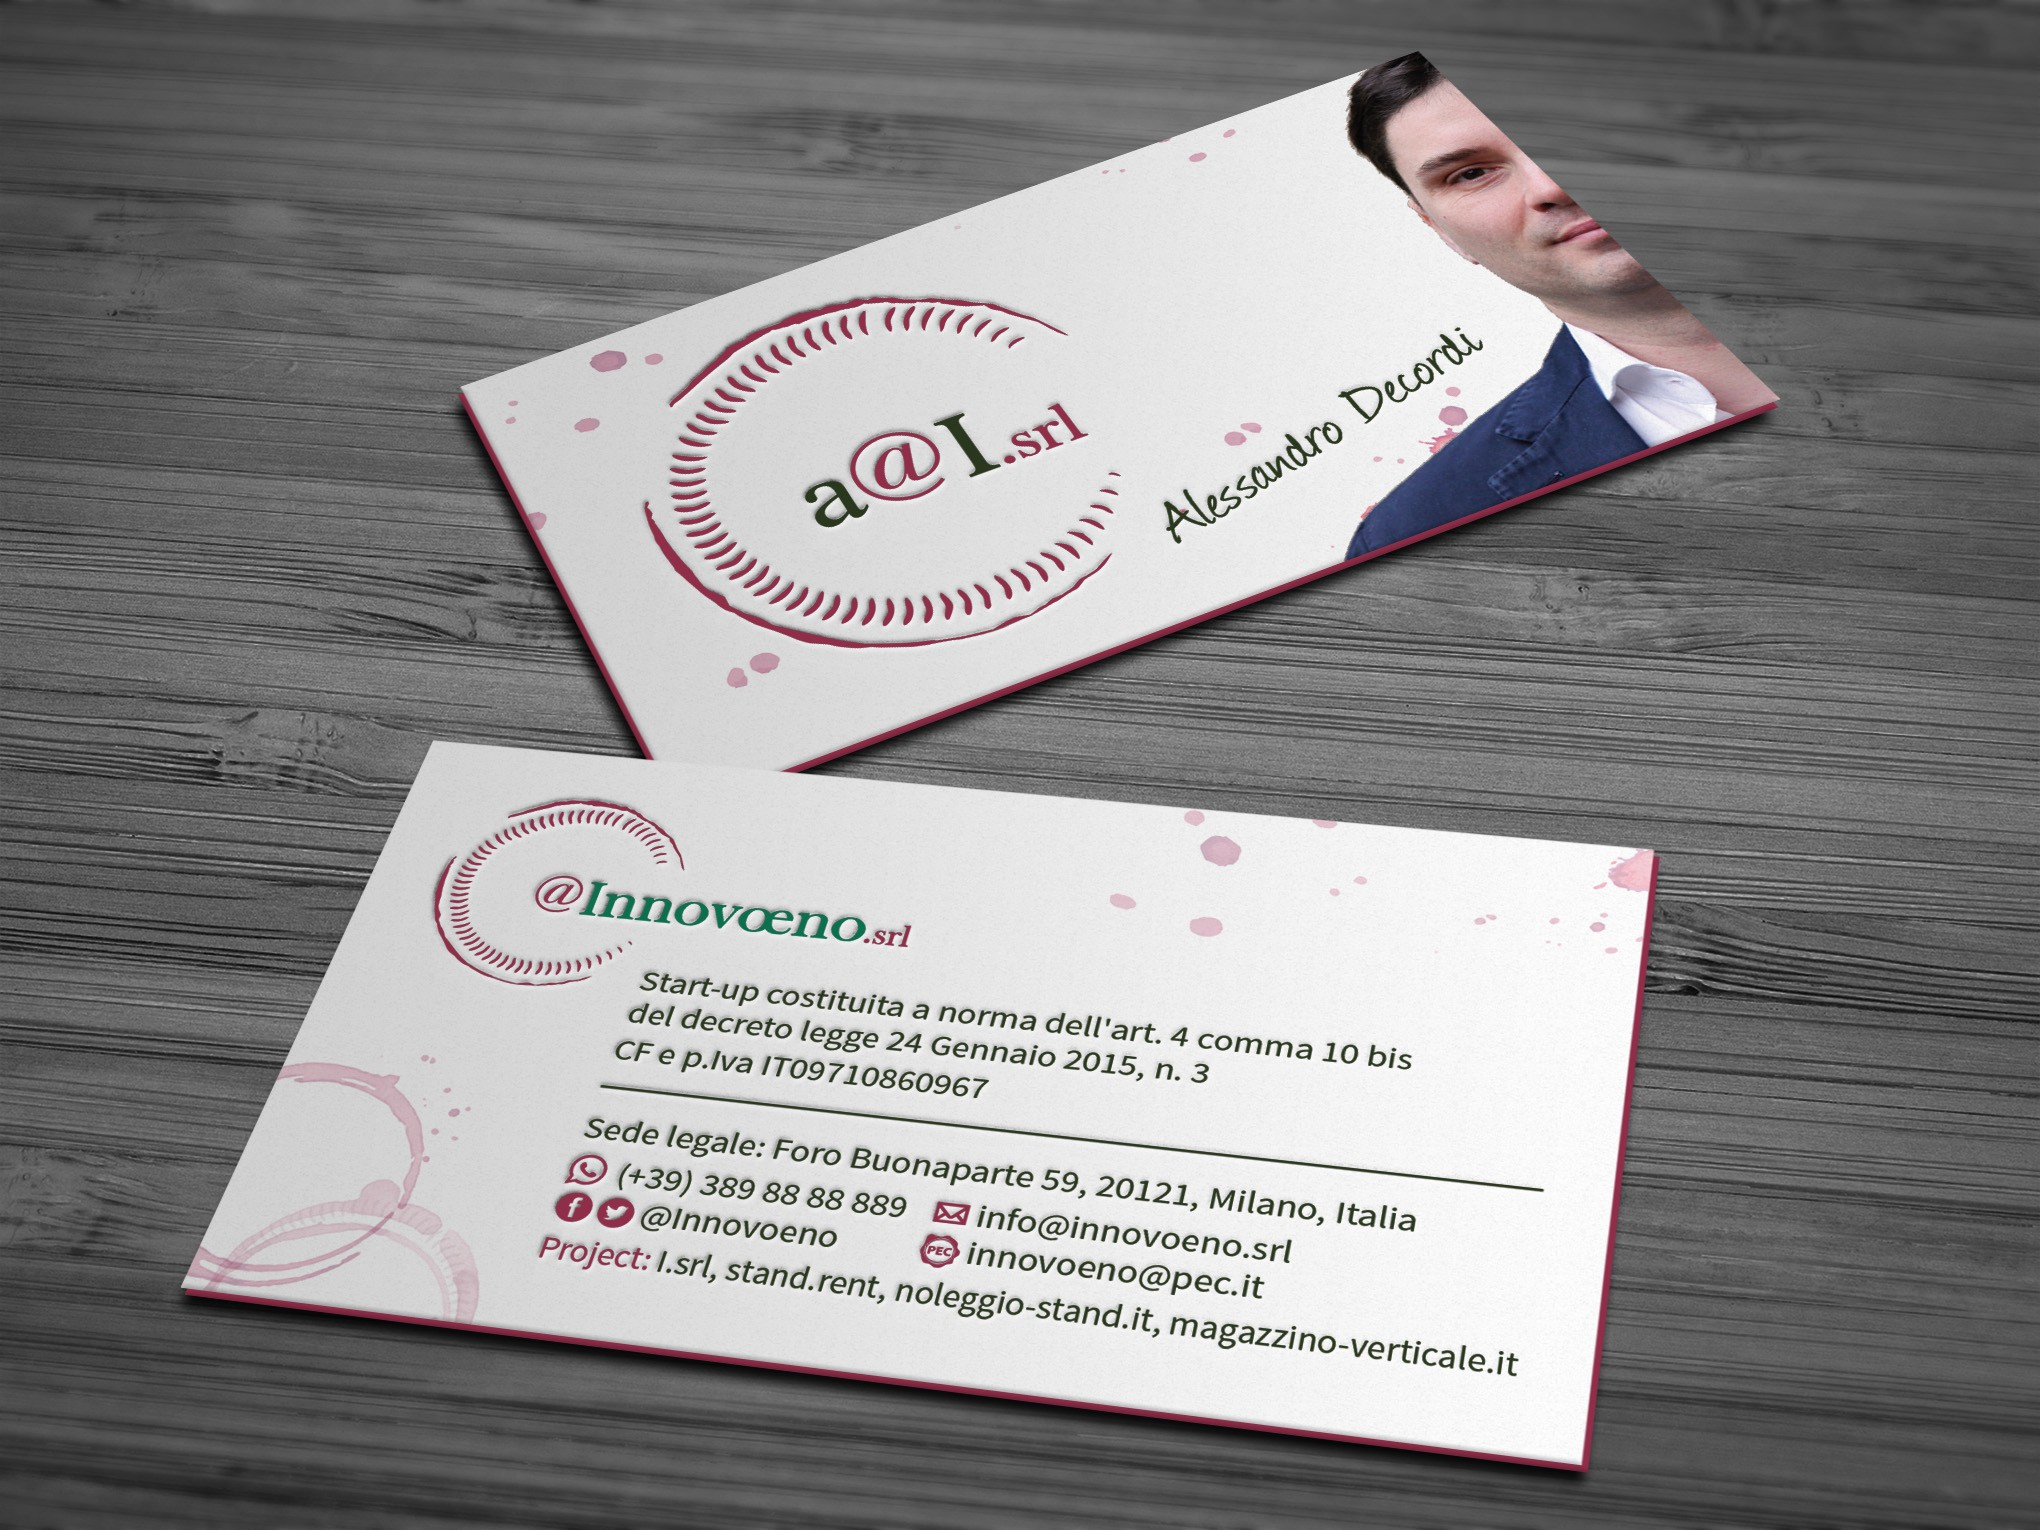 The most innovative Business card!